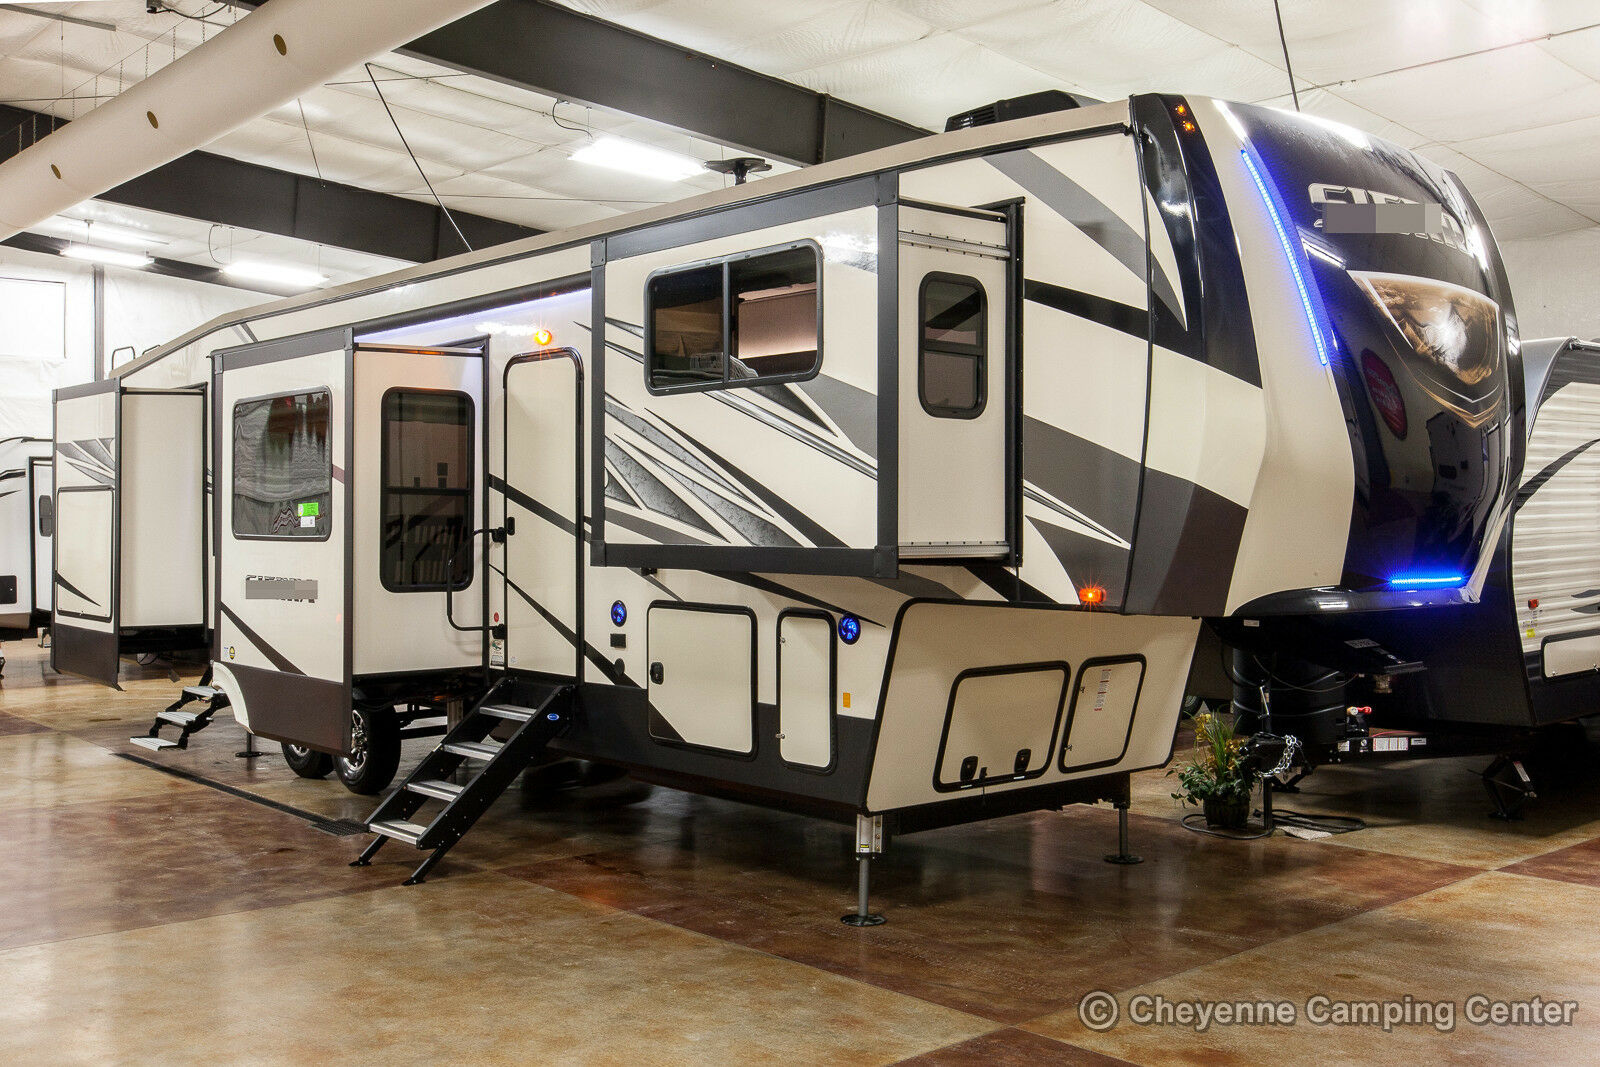 New 2019 379flok front living room 5th fifth wheel extended season rv 6 slides rv campers for sale for Front living room fifth wheel rv for sale